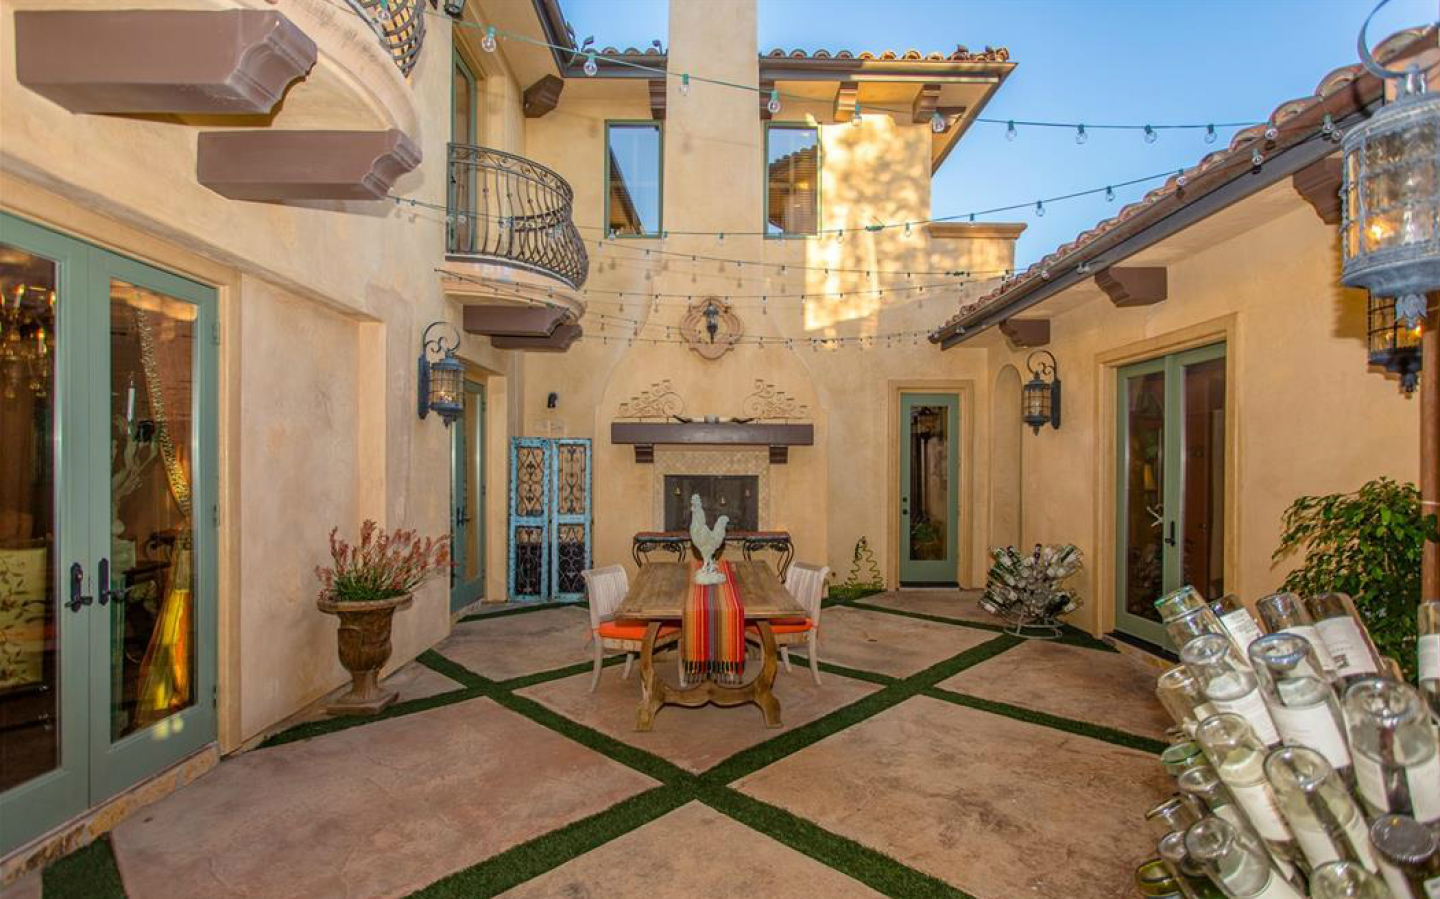 The inner courtyard reminiscent of the Tuscan variety in central Italy.